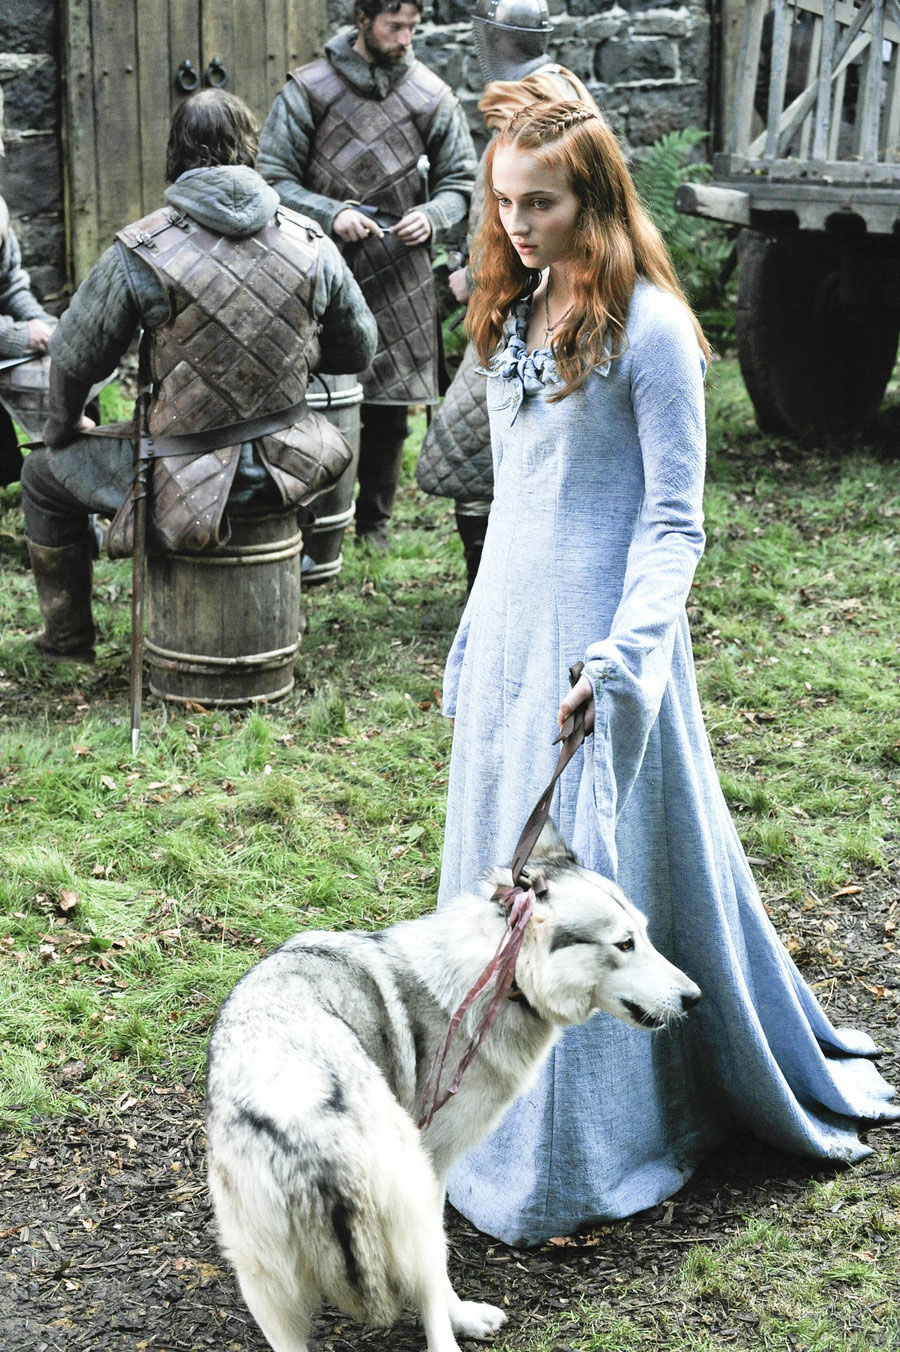 In Season One, Lady was sentenced to death by King Robert Baratheon. Ned Stark had to fulfill the duty of putting the dog to rest, which broke everyone's heart. The direwolves were introduced in the very first episode of the show—everyone loves man's best friend.